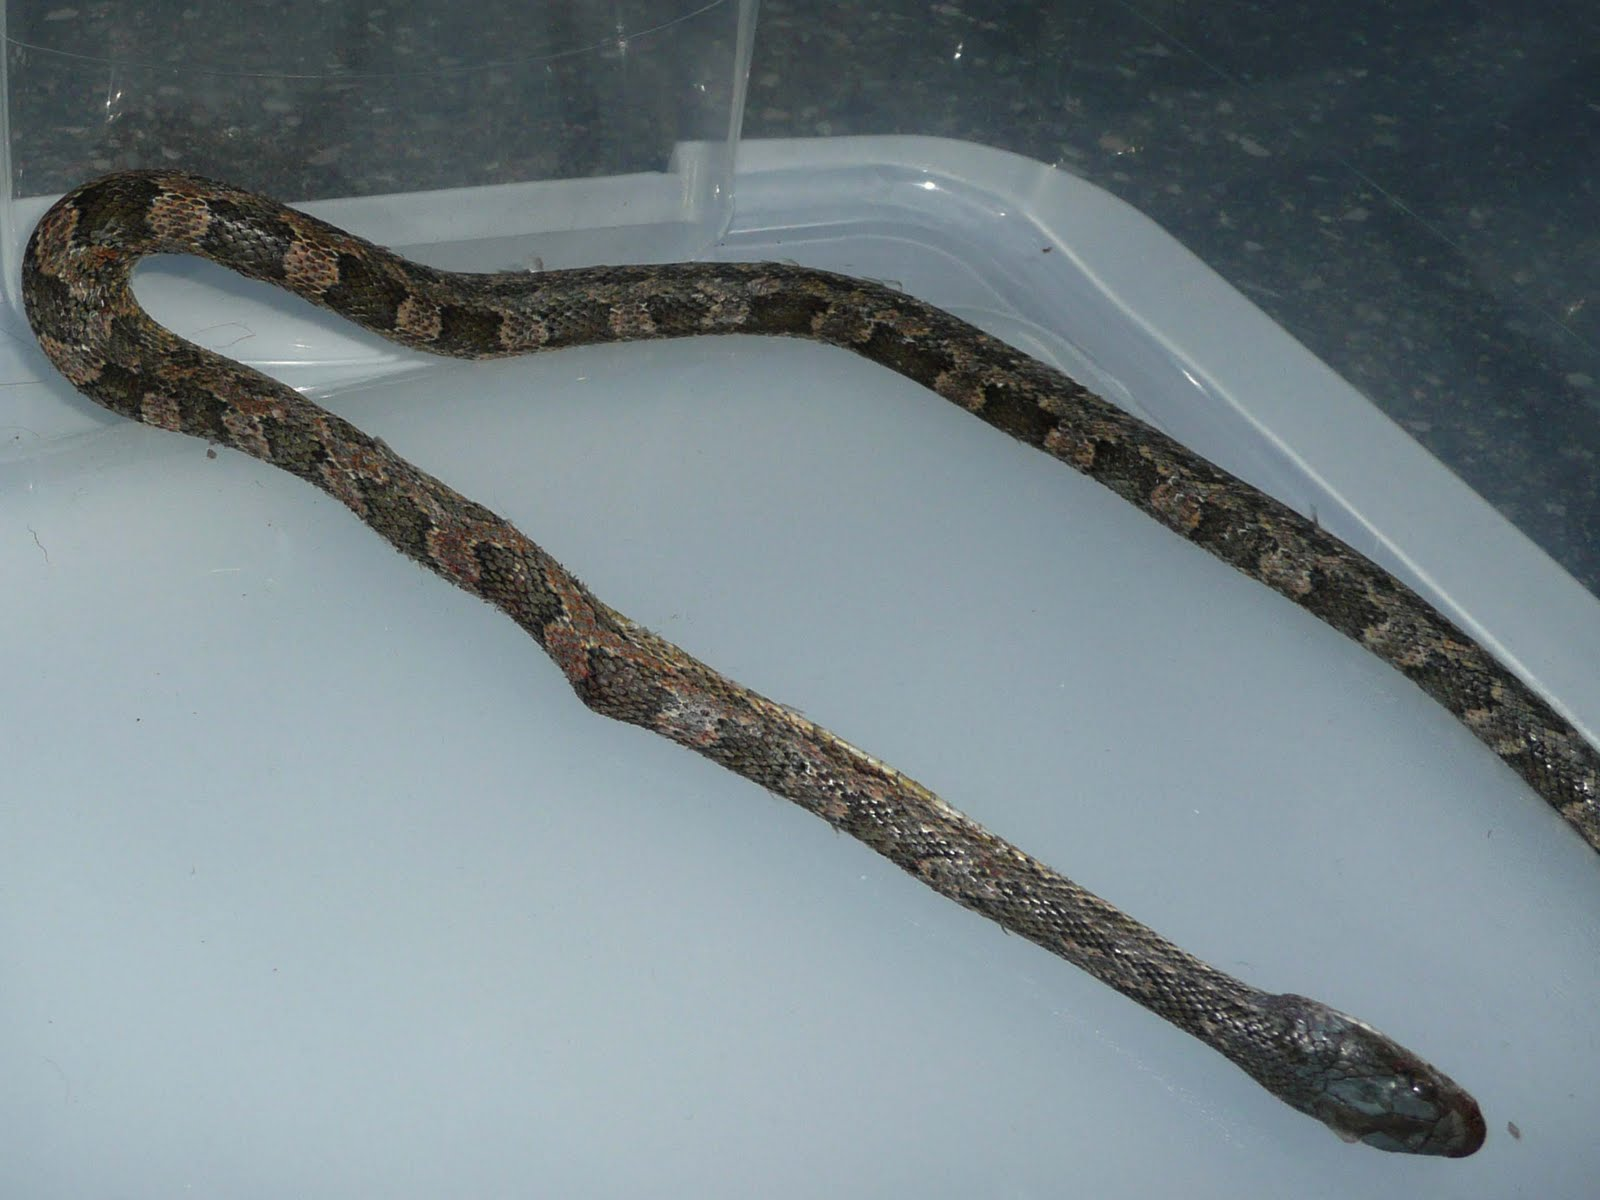 The Milkweed Patch Snake Killed By Air Conditioner